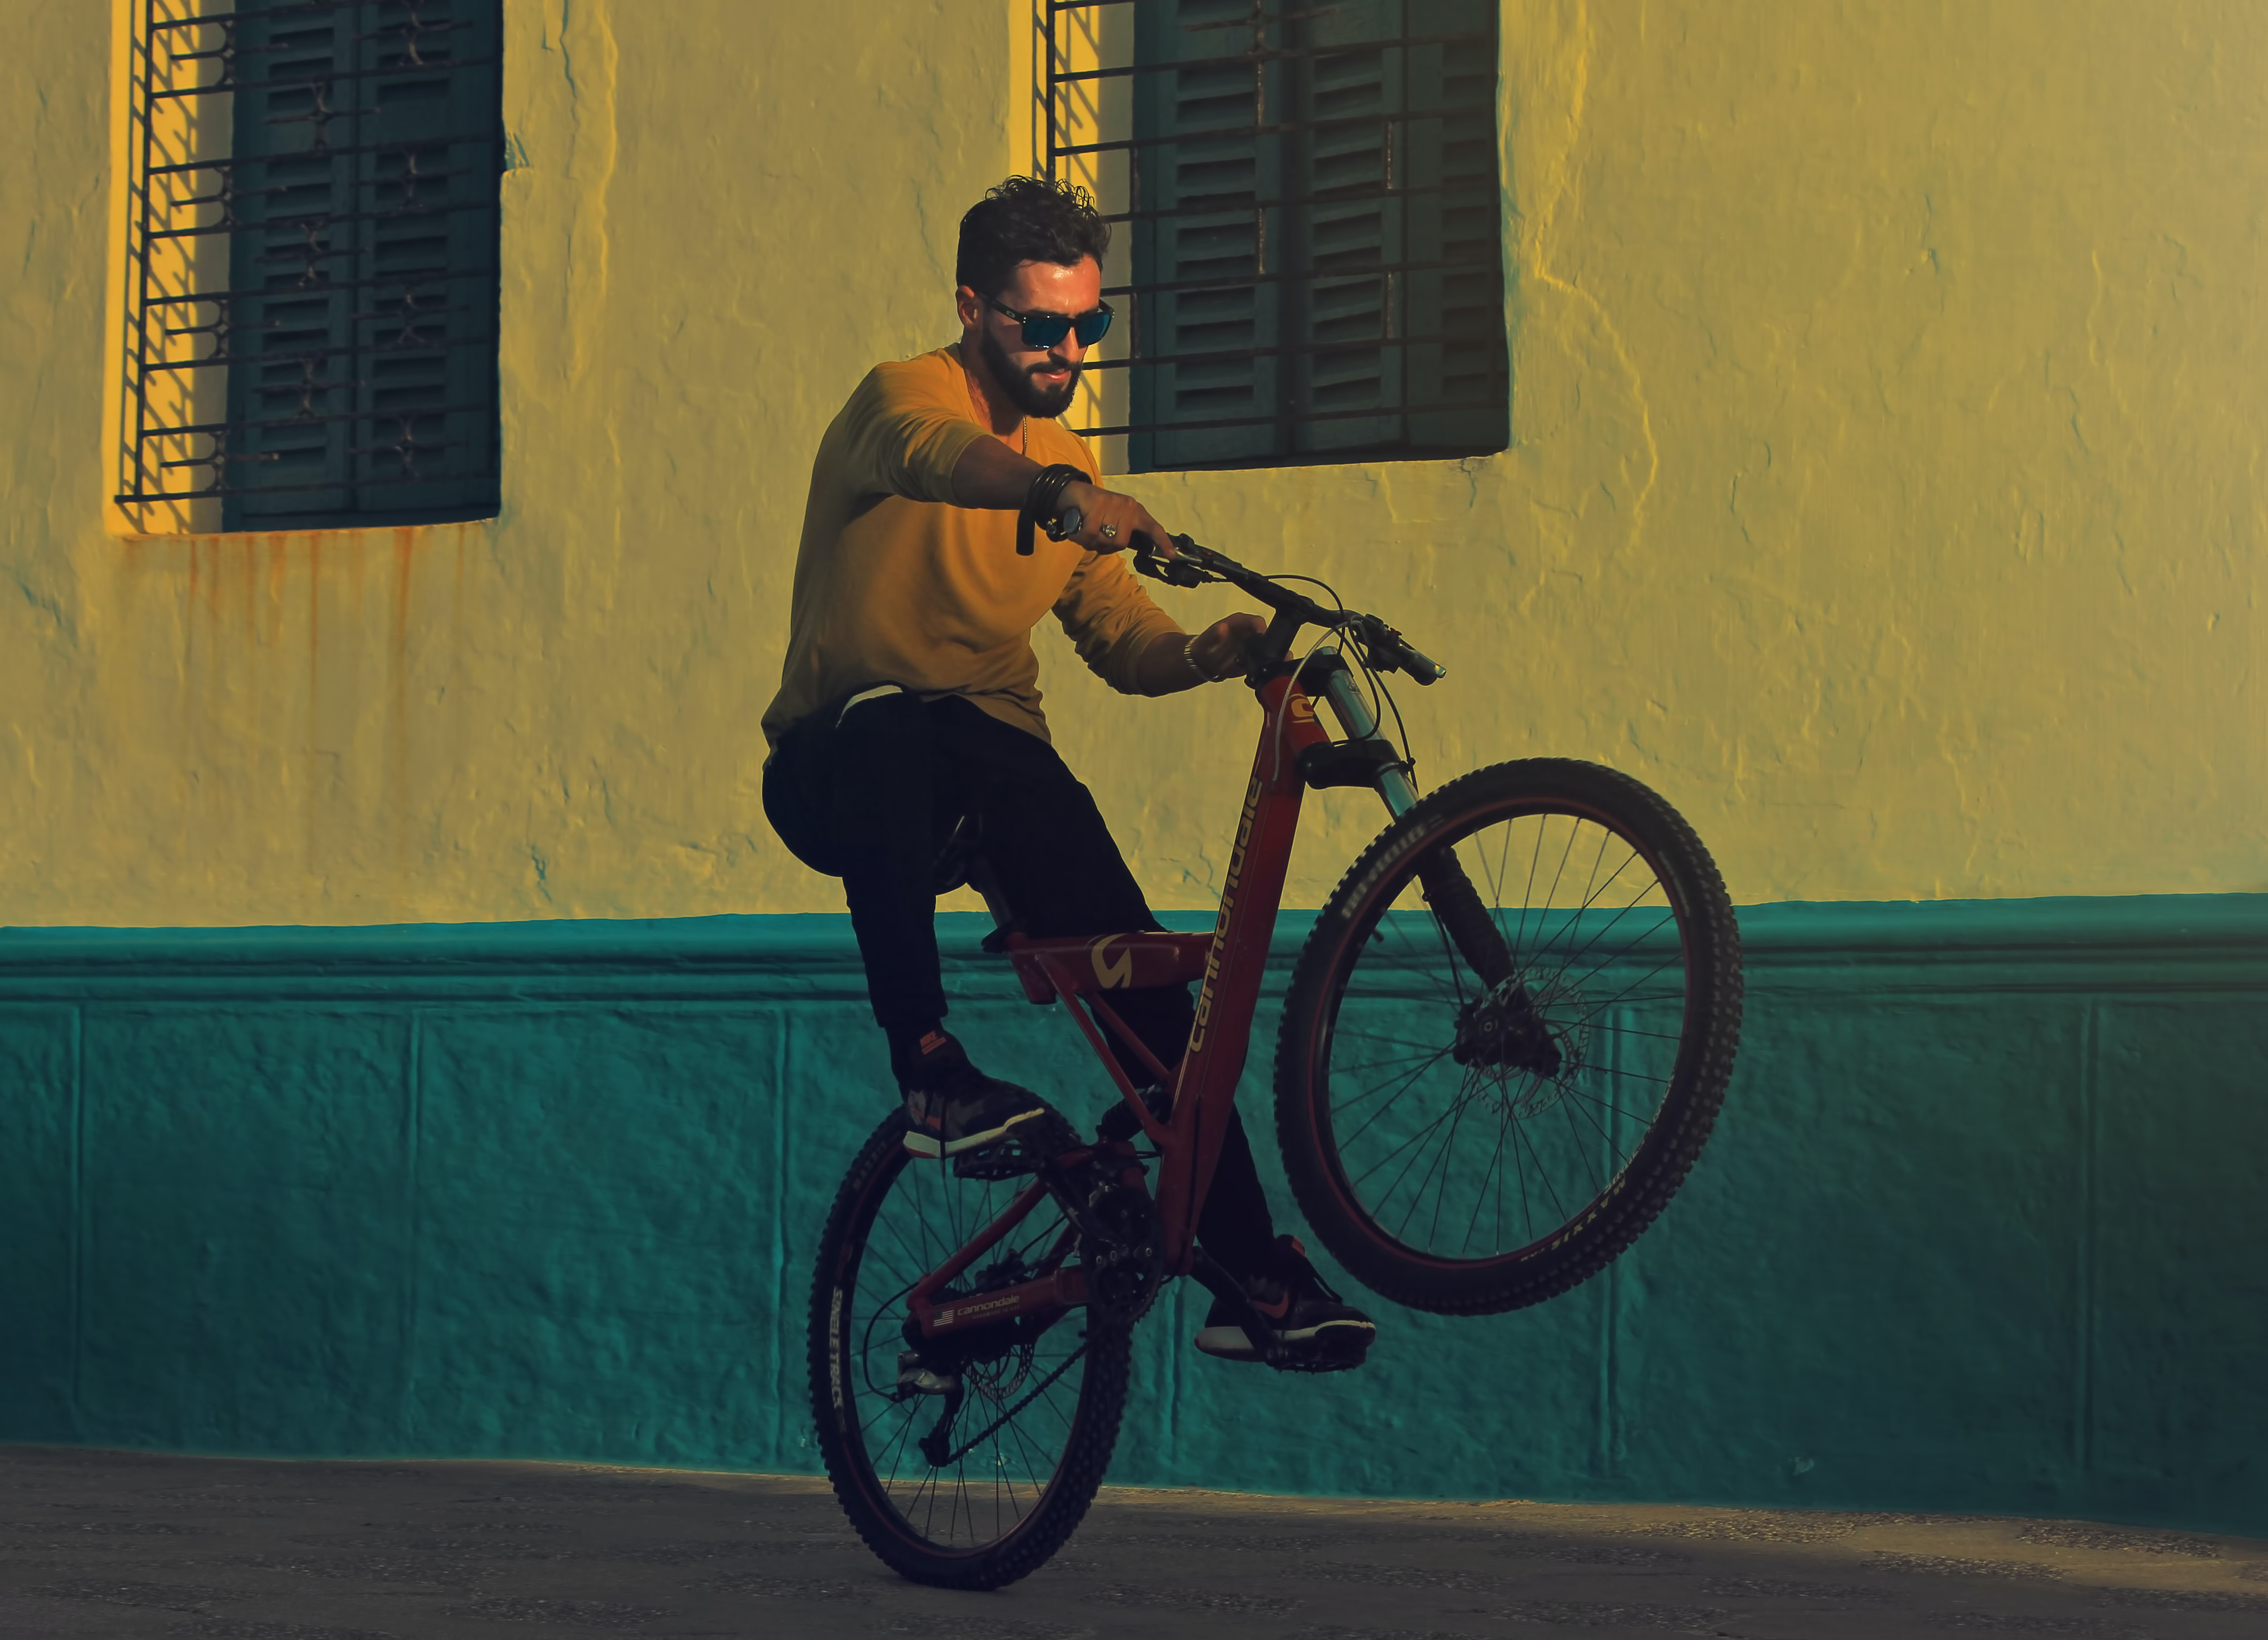 Bearded man in sunglasses doing wheelie on bicycle in front of green and yellow building